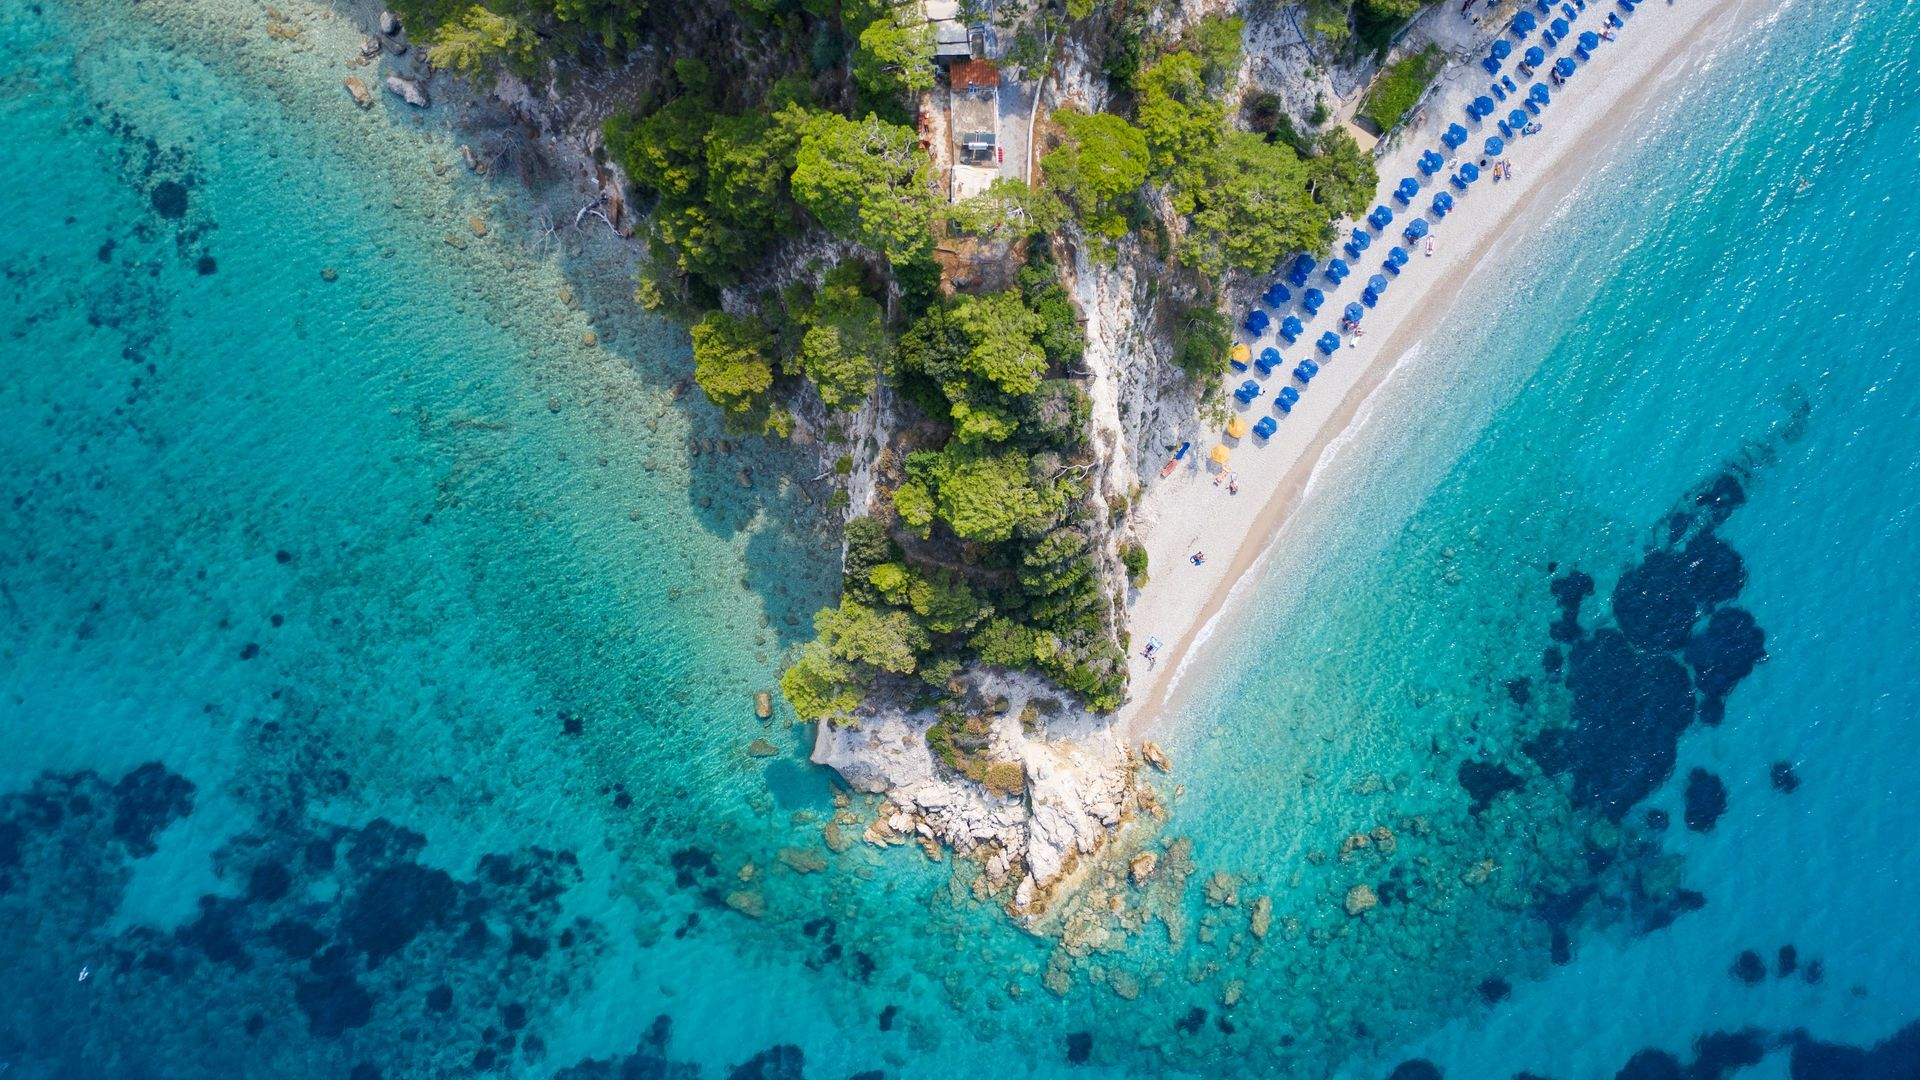 On the north coast, you could start with popular Kokkari beach